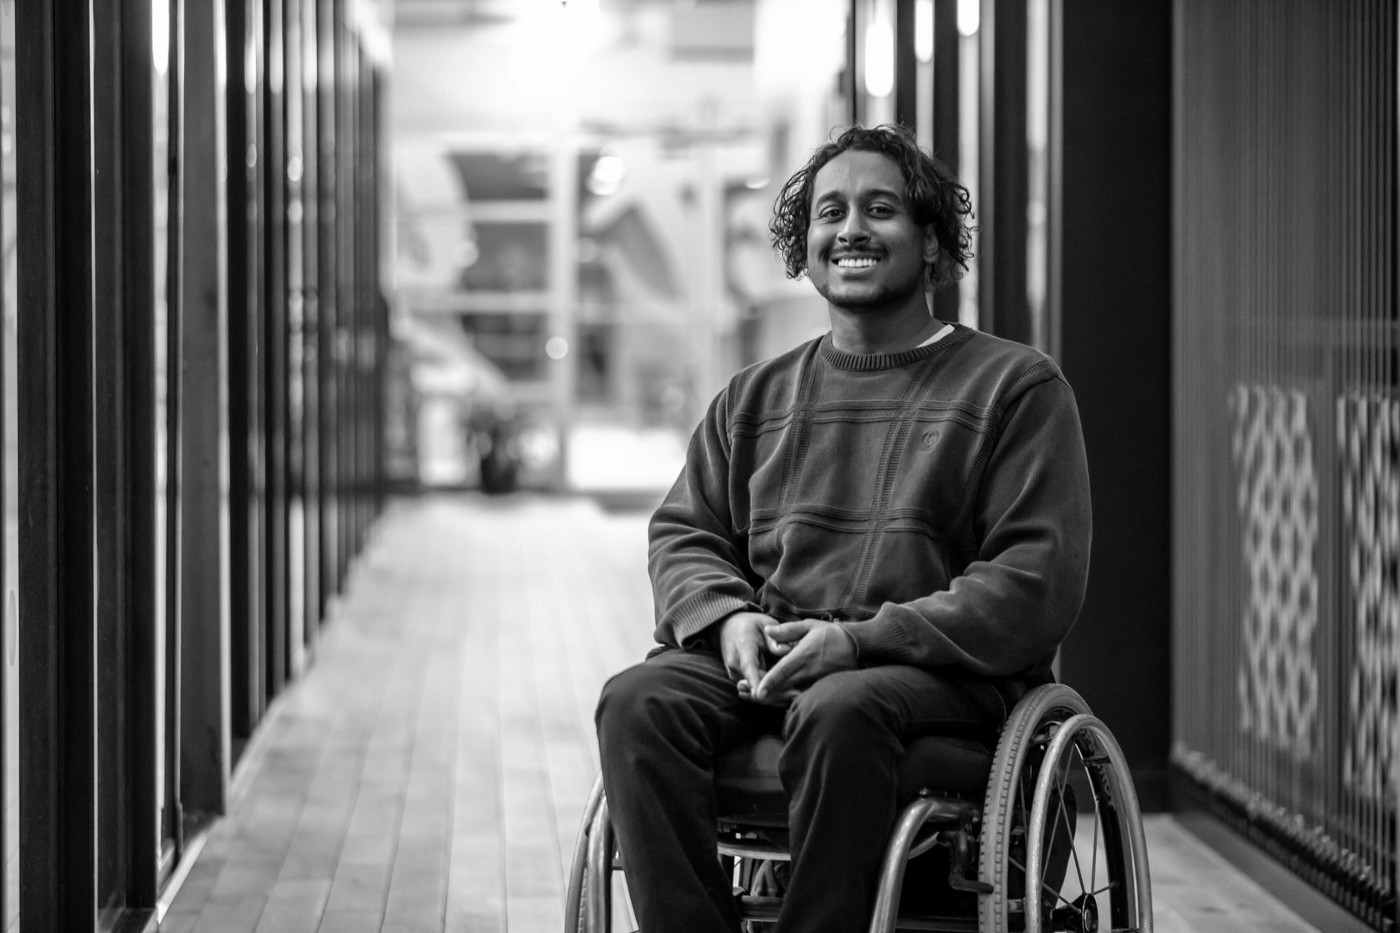 A black man faces the camera and smiles. He is wearing a dark sweater and pants and sitting in a partially visible wheelchair